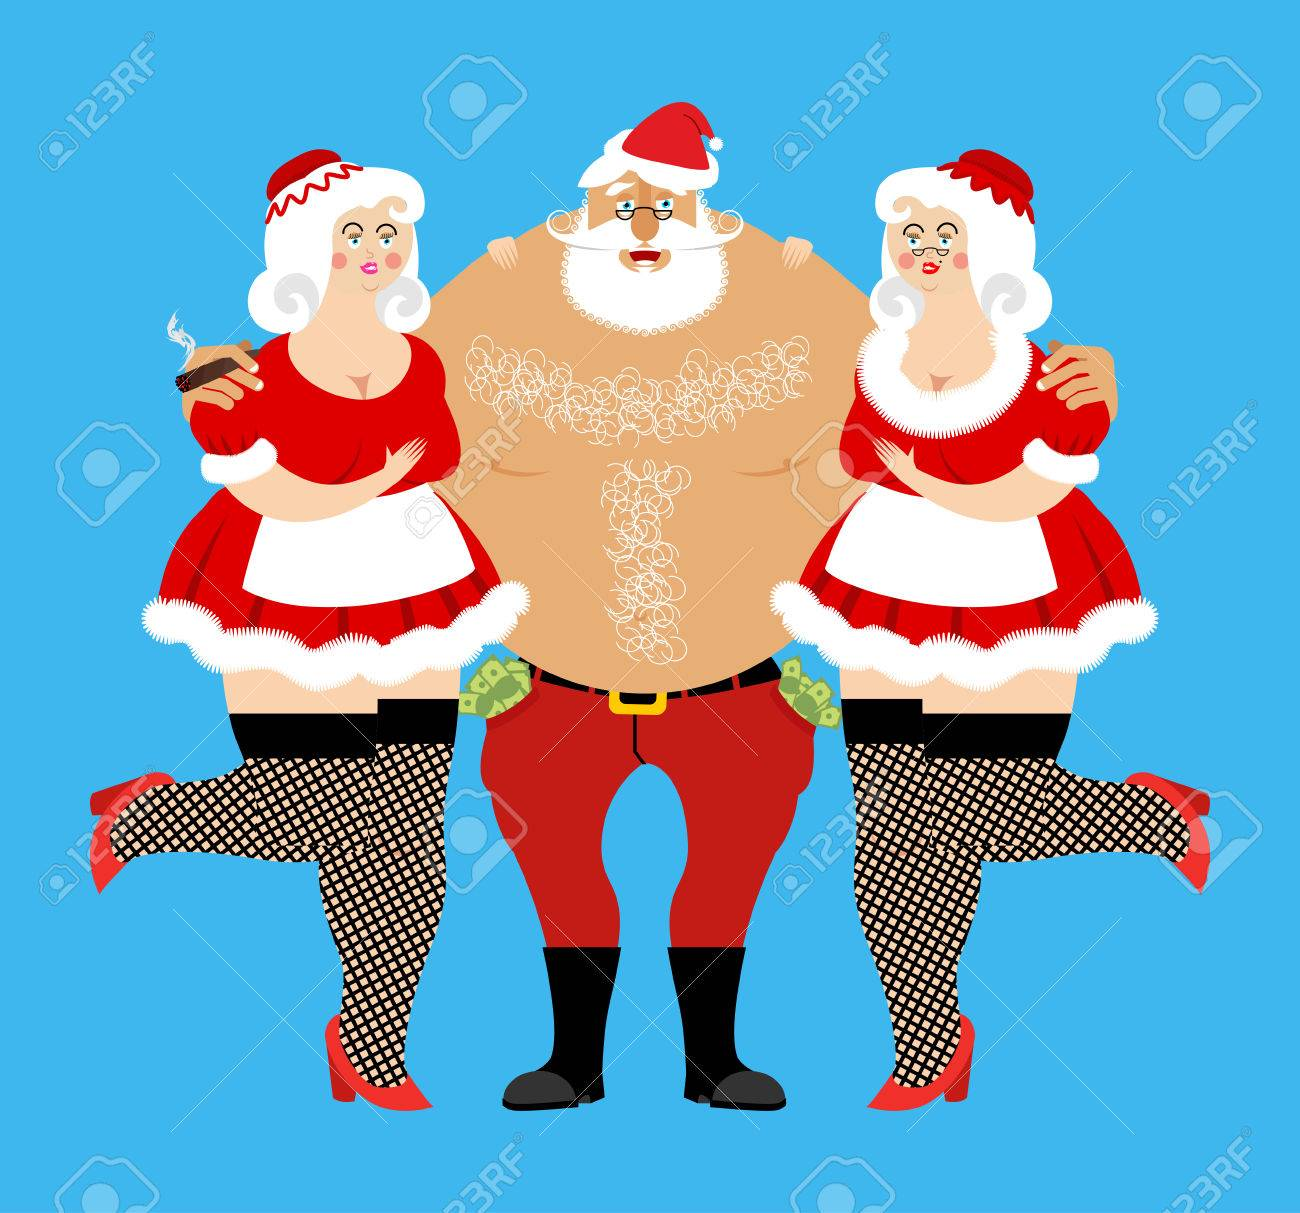 Santa Claus And Sexy Girls Entertainment For Adults Strippers Hugging Man With Money